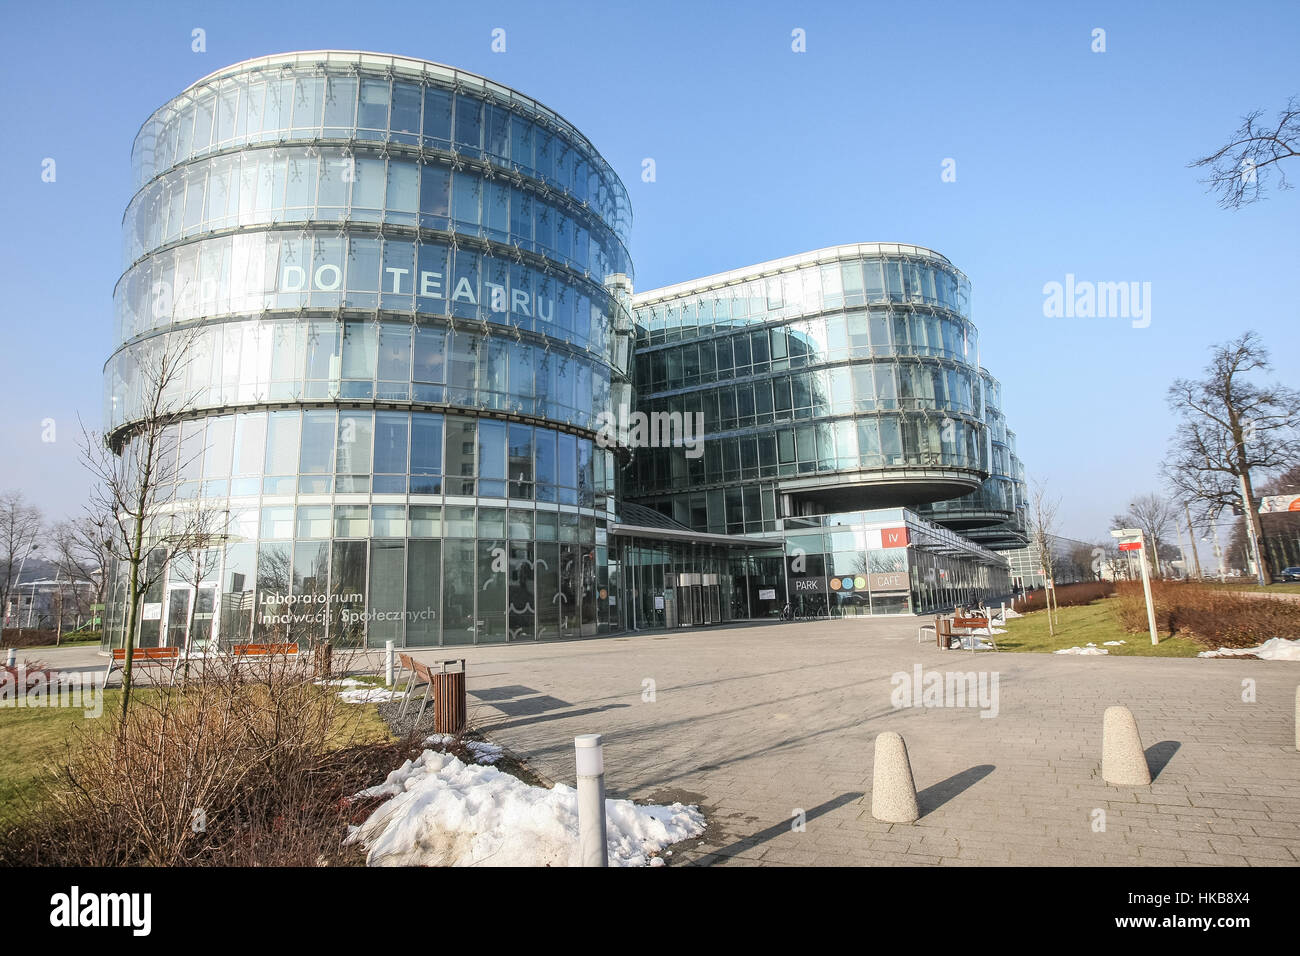 Arte Cucine Gdynia Low Poly Building Immagini Low Poly Building Fotos Stock Alamy